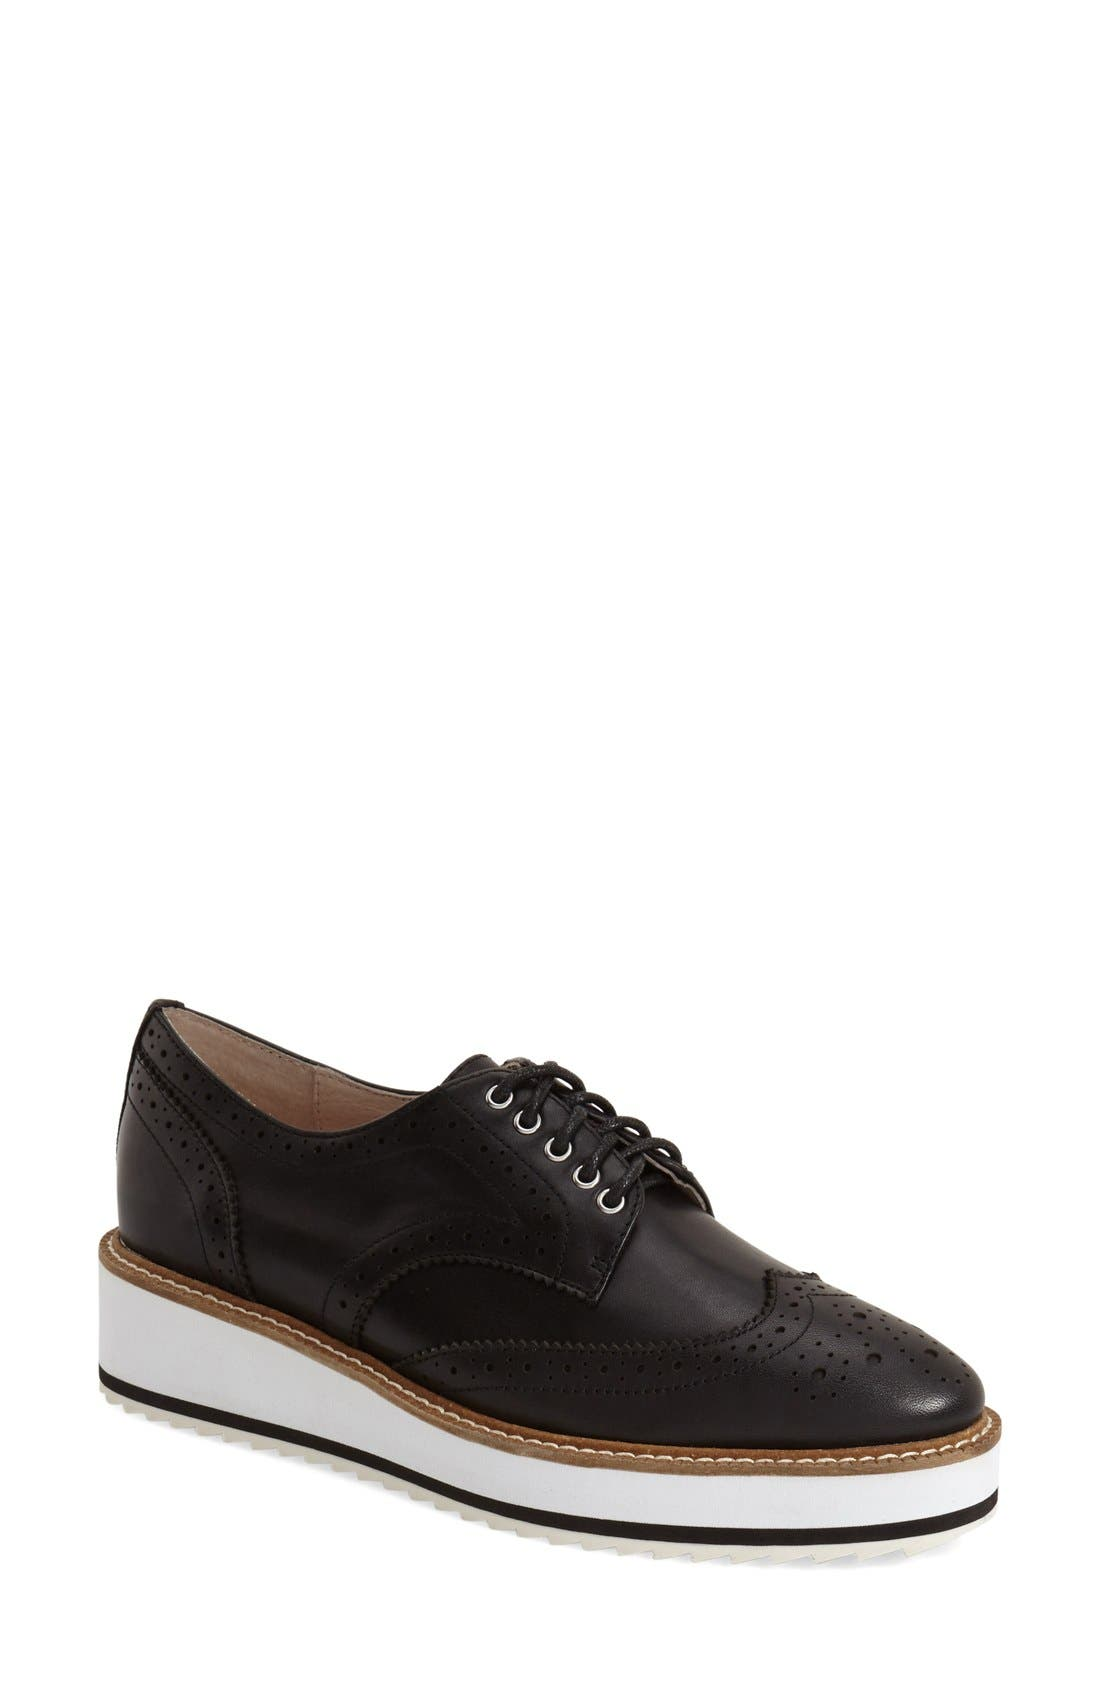 Alternate Image 1 Selected - Shellys London Emma Platform Oxford (Women)